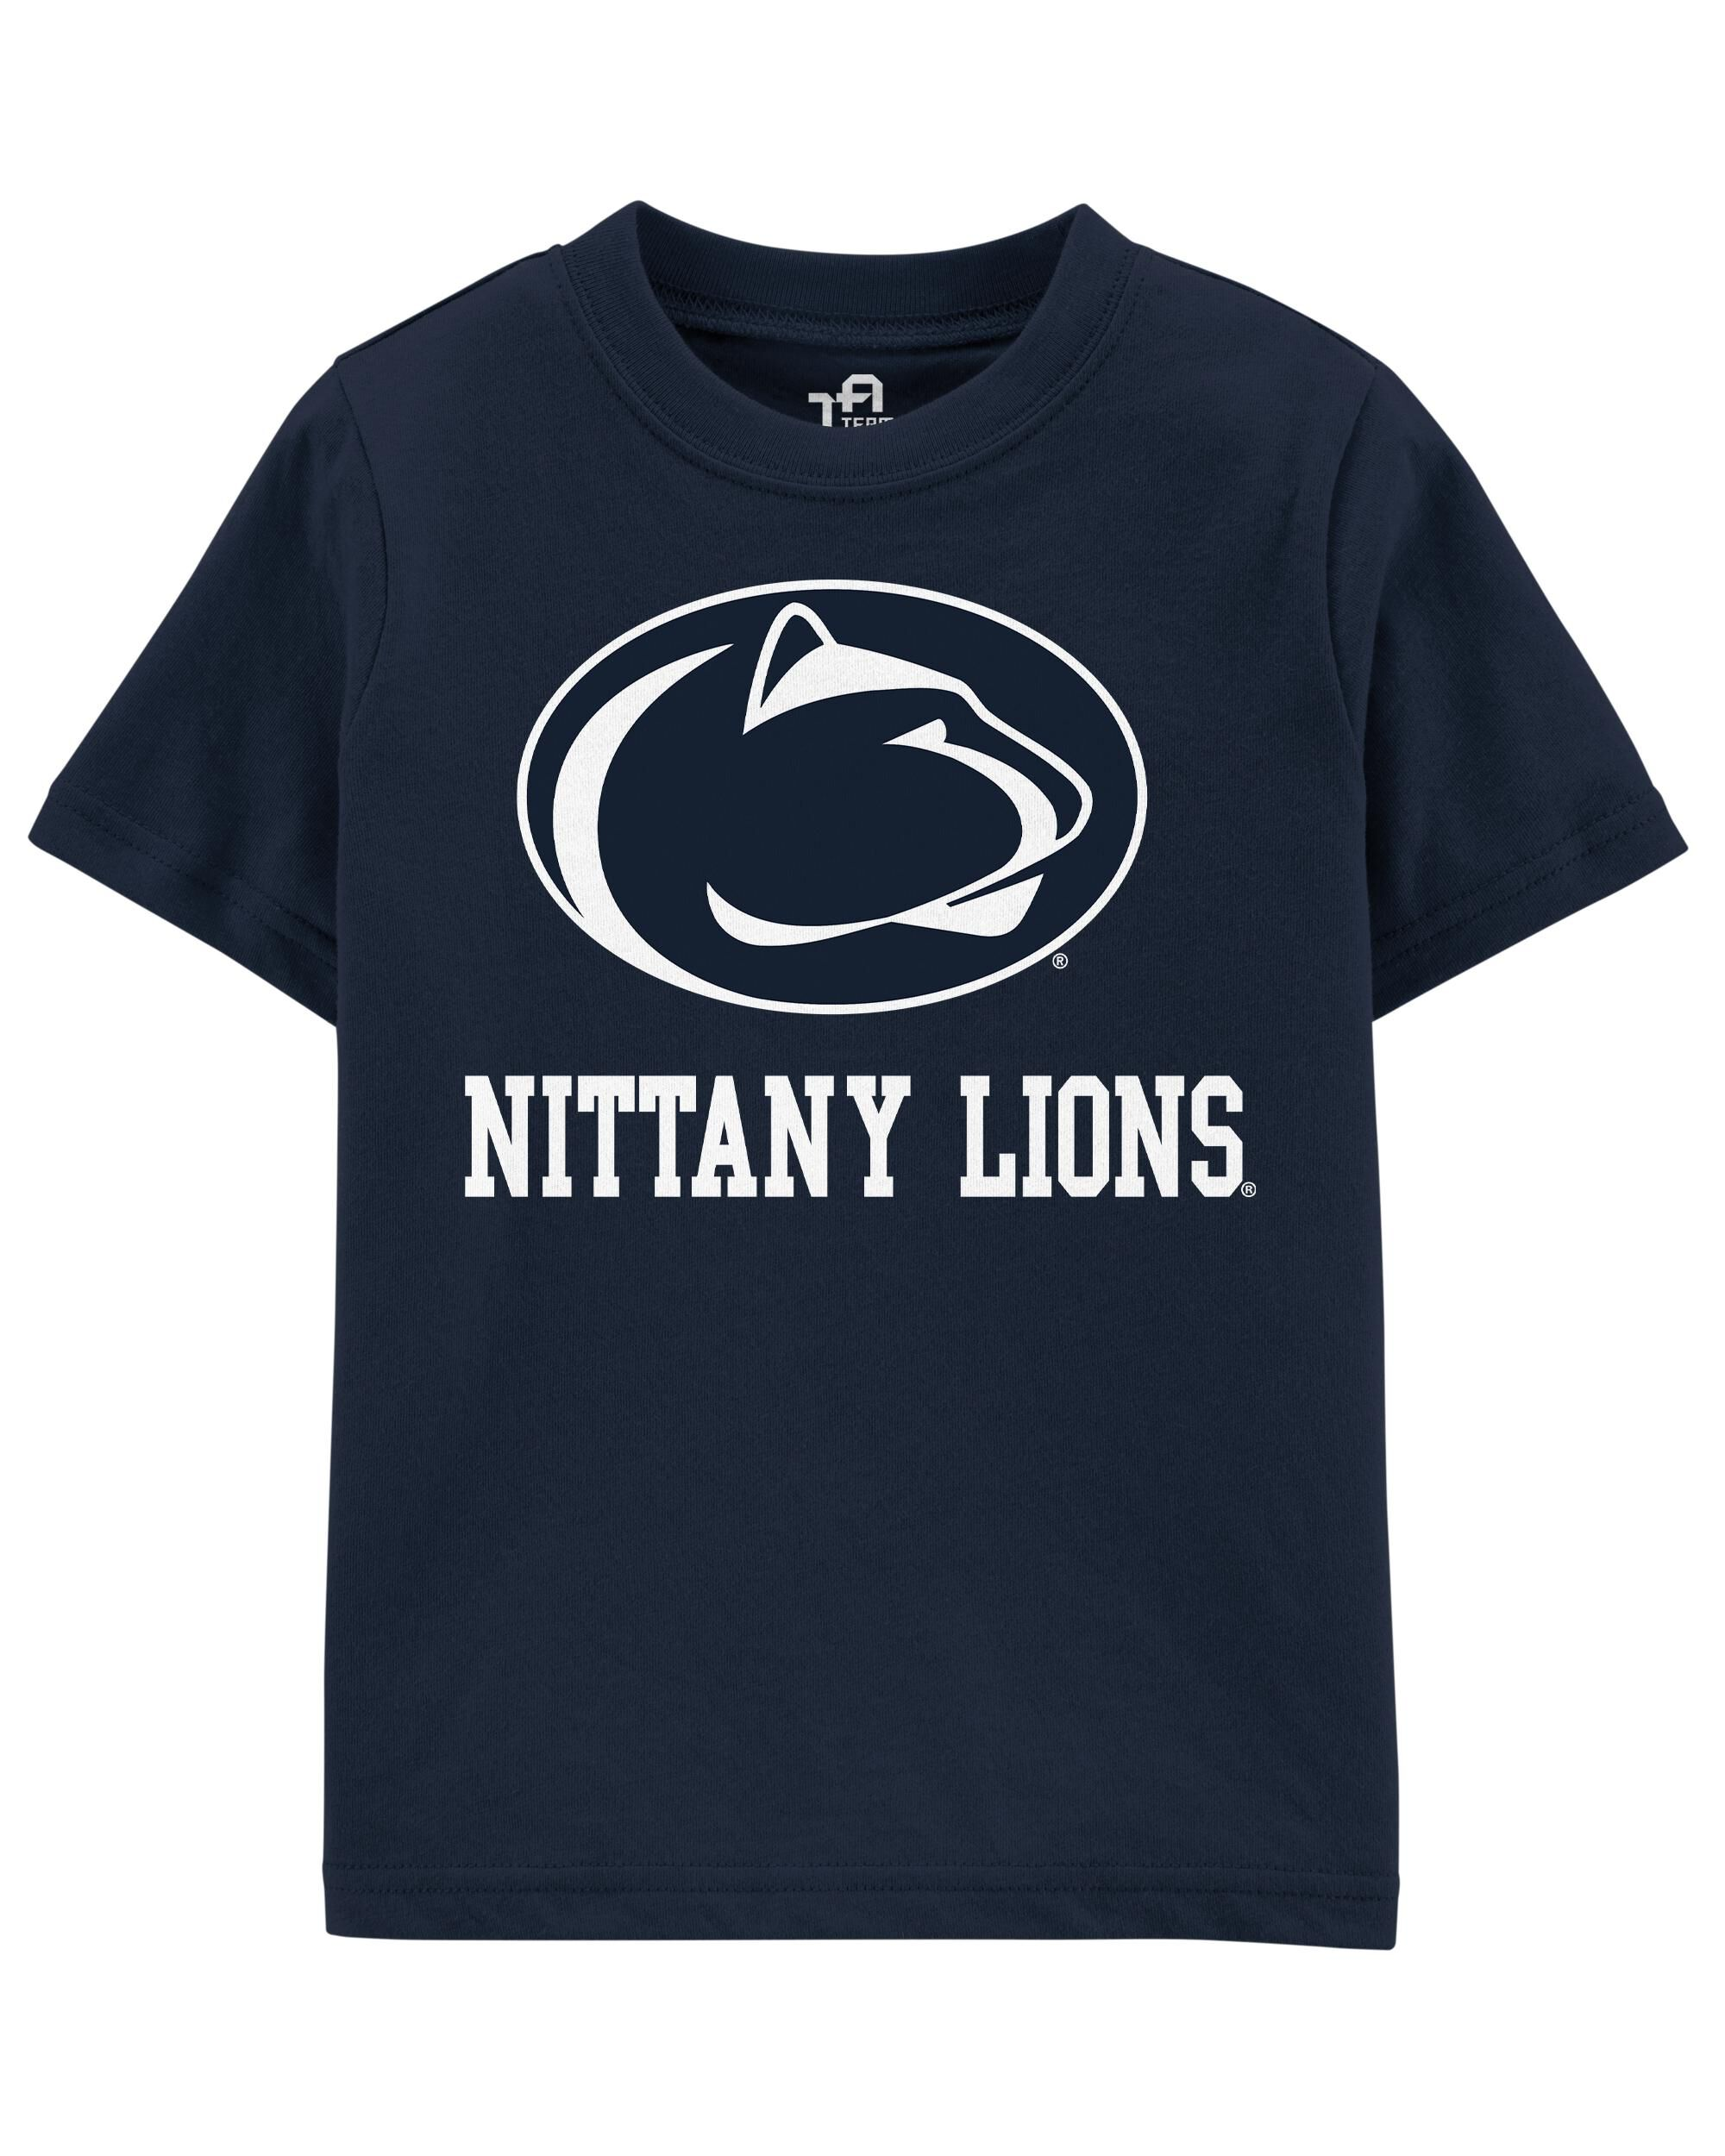 Penn State Lions Tshirt Toddler T-Shirt Love Watching With Daddy